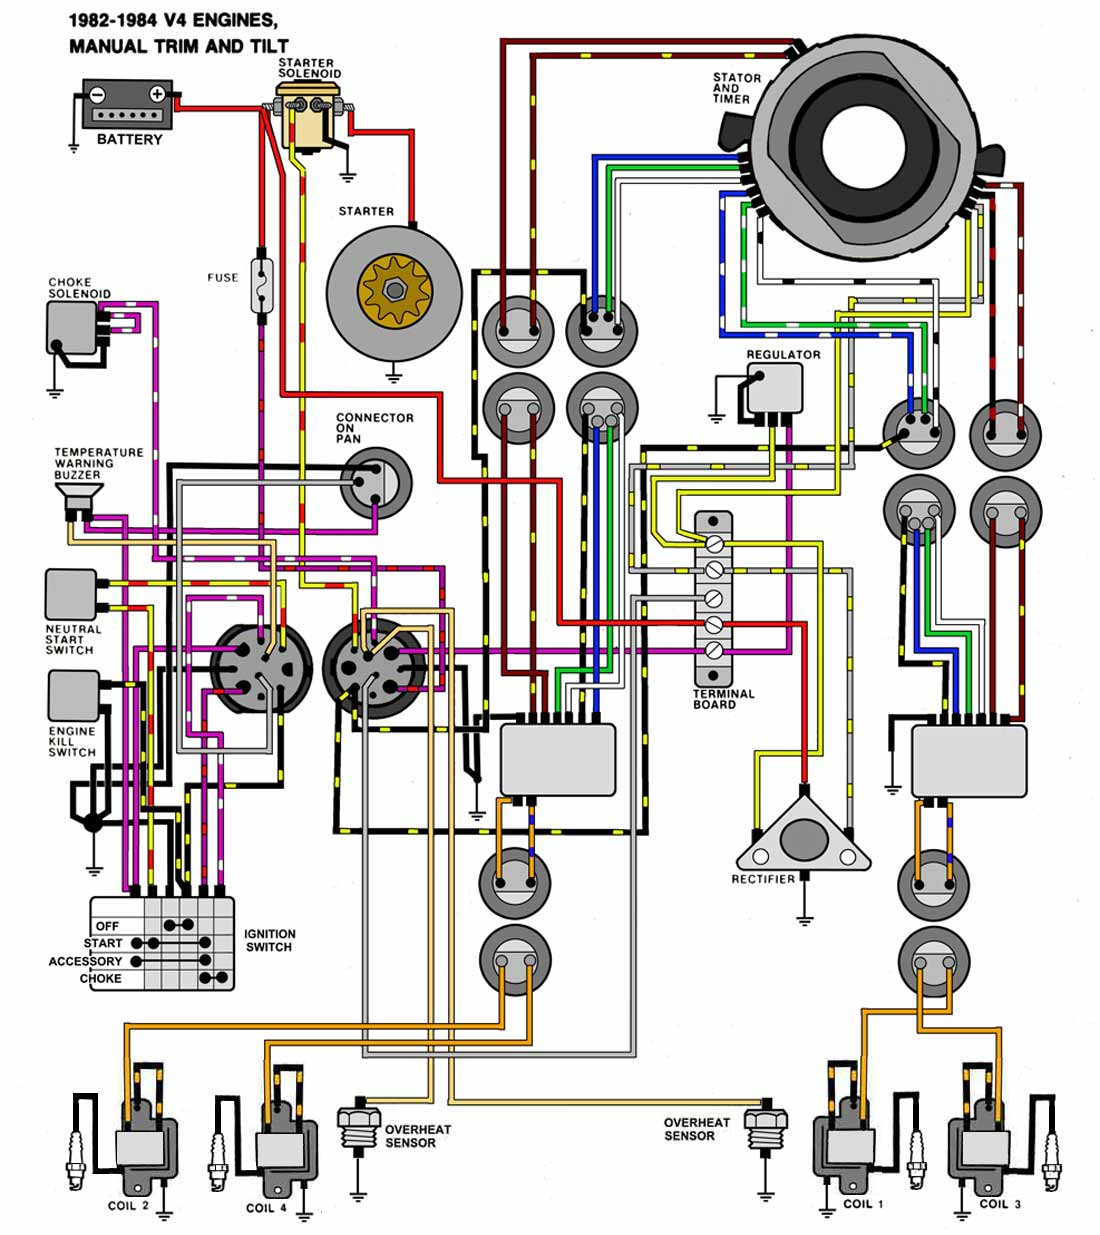 82_84_V4_NOTNT mastertech marine evinrude johnson outboard wiring diagrams evinrude key switch wiring diagram at gsmx.co